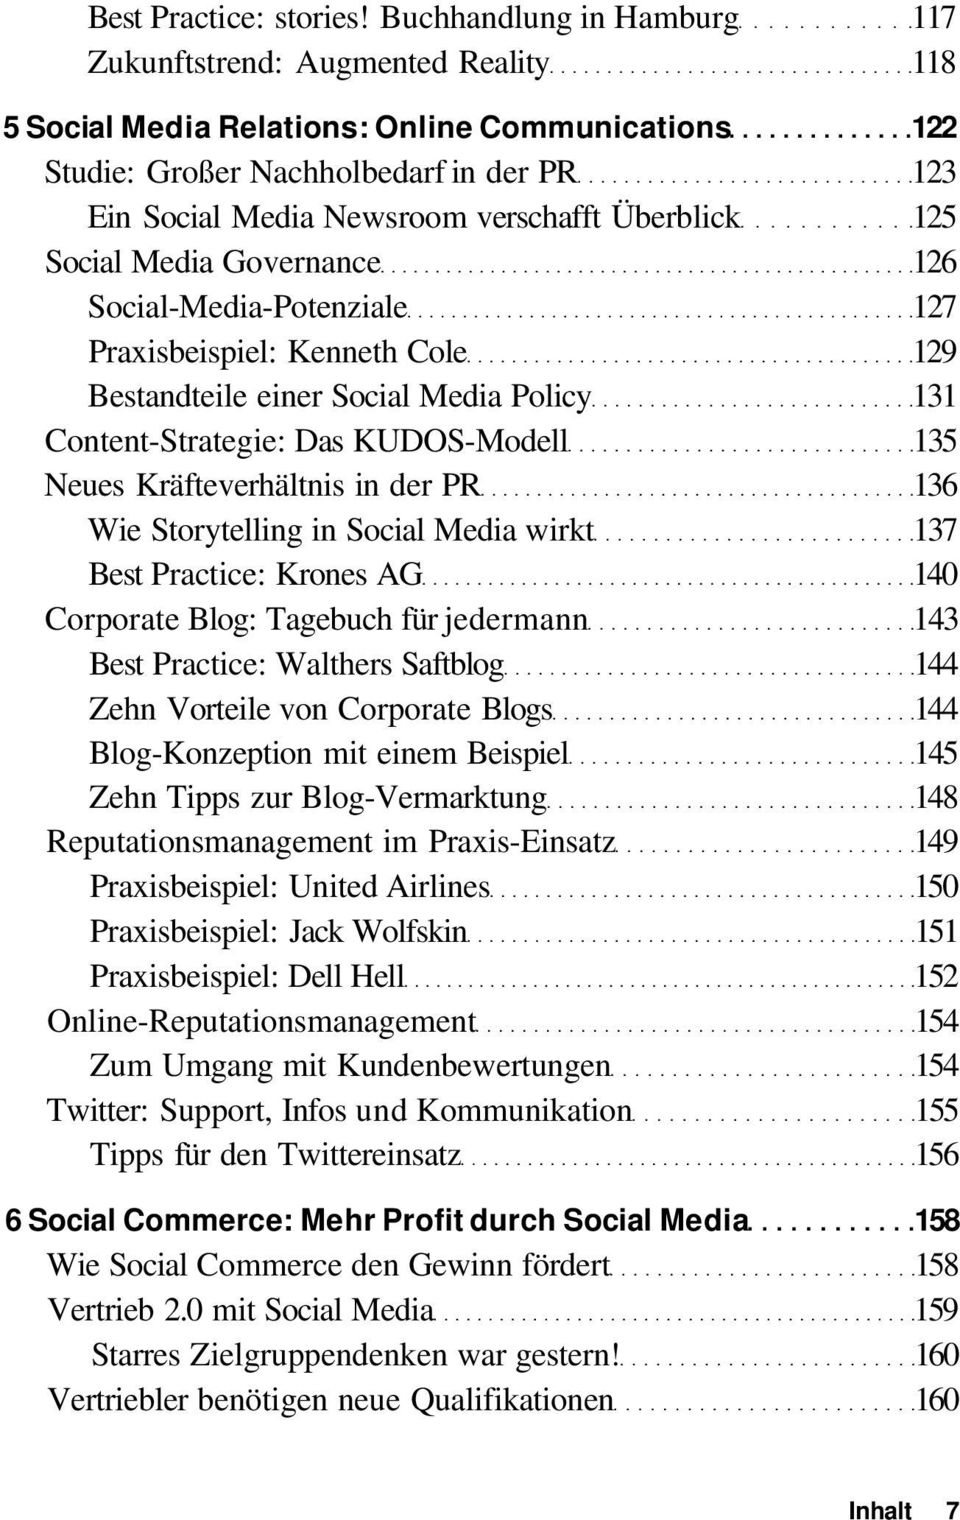 Überblick 125 Social Media Governance 126 Social-Media-Potenziale 127 Praxisbeispiel: Kenneth Cole 129 Bestandteile einer Social Media Policy 131 Content-Strategie: Das KUDOS-Modell 135 Neues